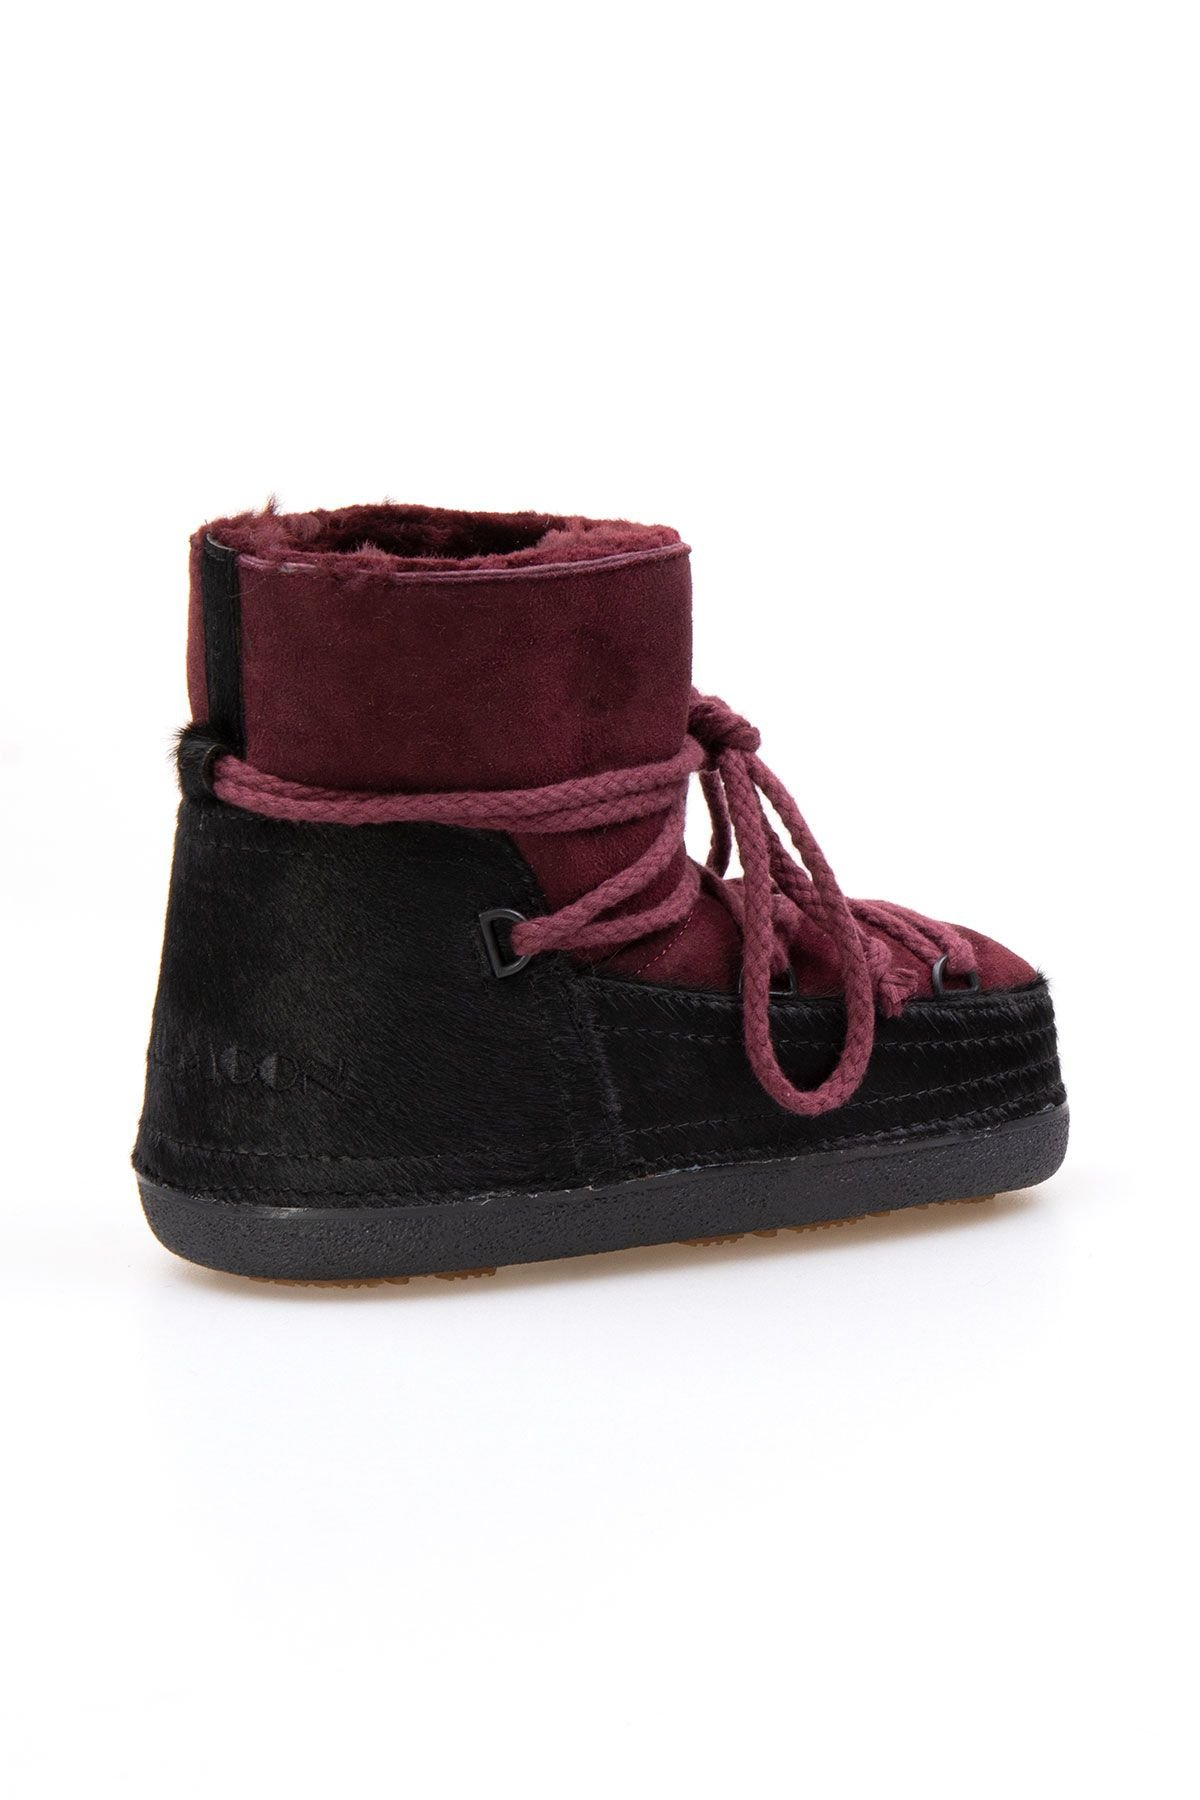 Cool Moon Genuine Sheepskin Women's Snow Boots 251114 Claret red